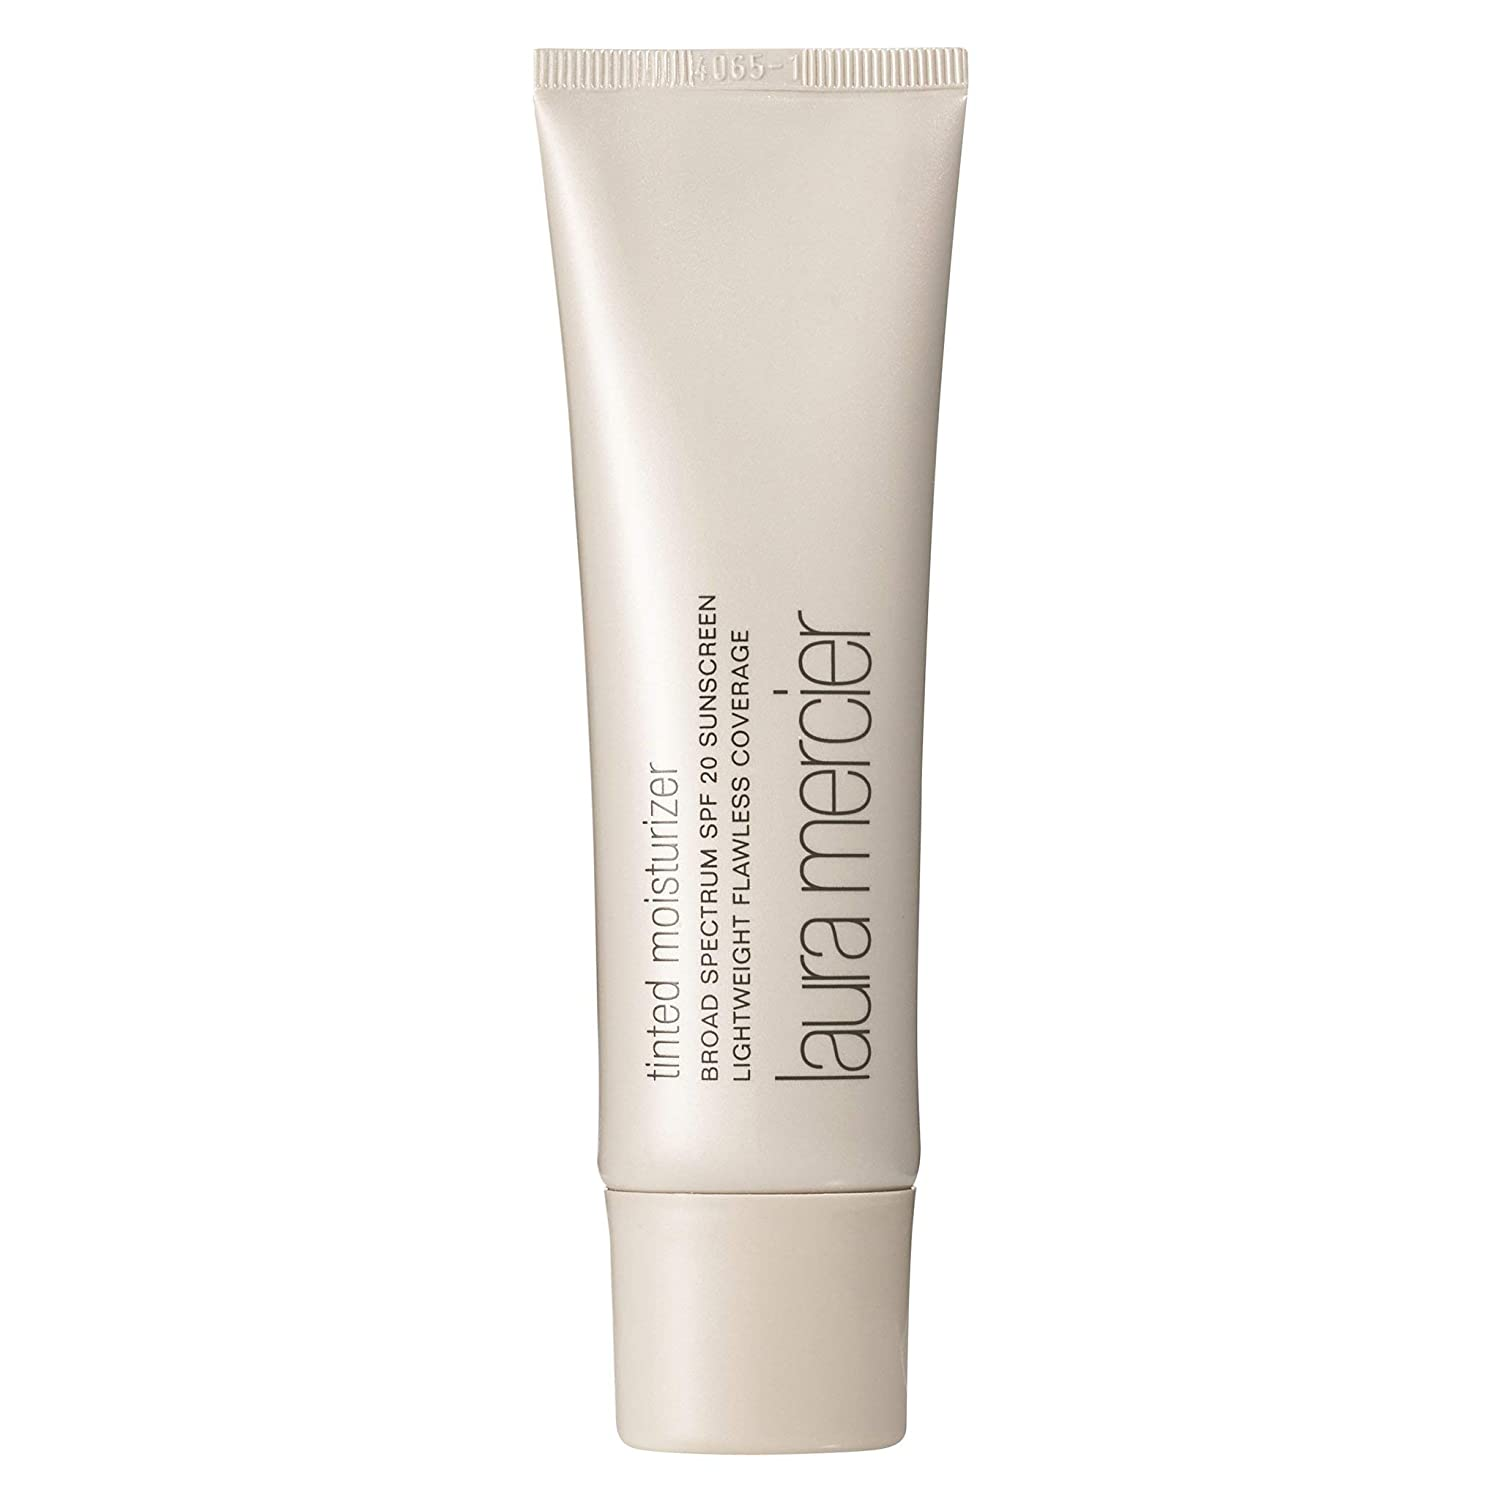 Laura Mercier Tinted Moisturizer SPF 20 - Tan 1.5oz (40ml)